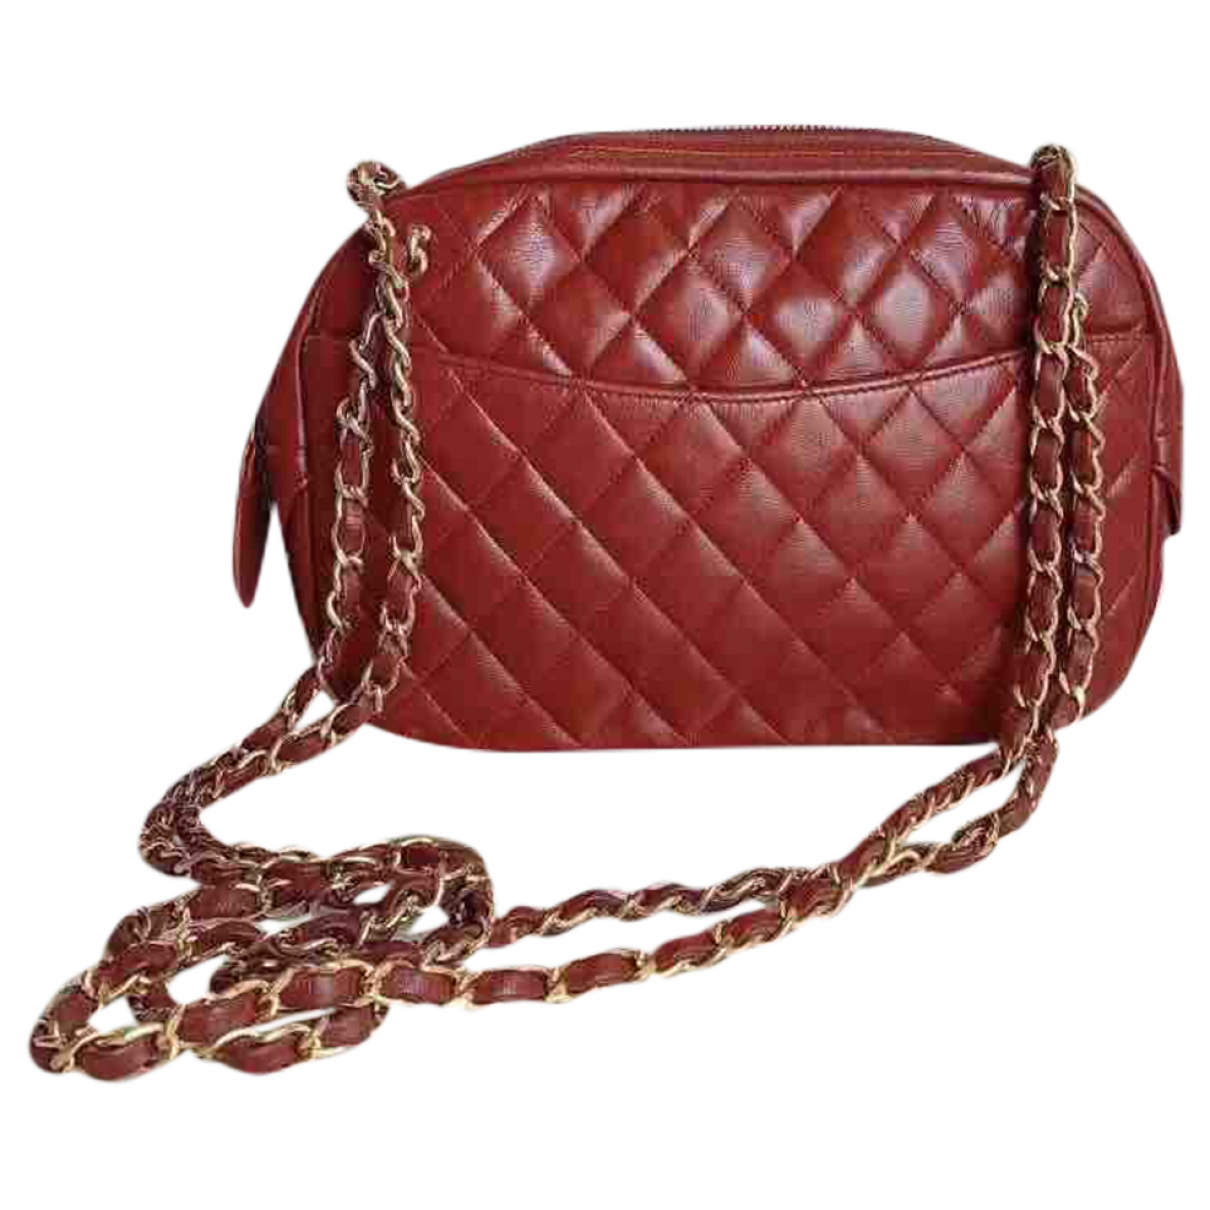 Chanel Camera Red Leather handbag for Women N